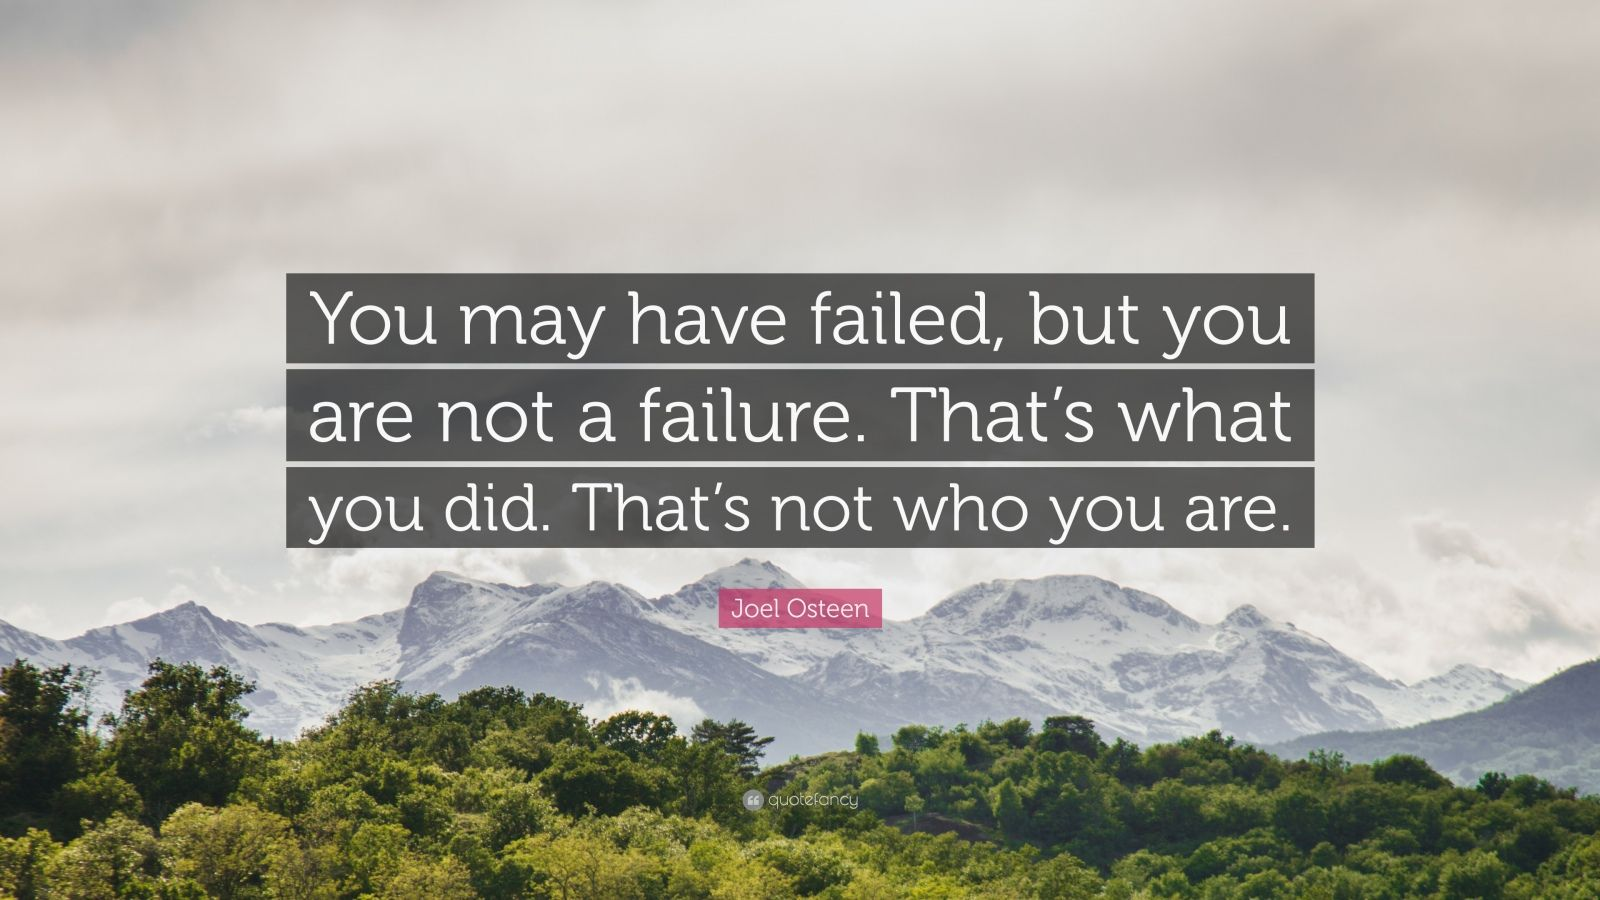 """Joel Osteen Quote: """"You may have failed, but you are not a failure. That's what you did. That's not who you are."""""""